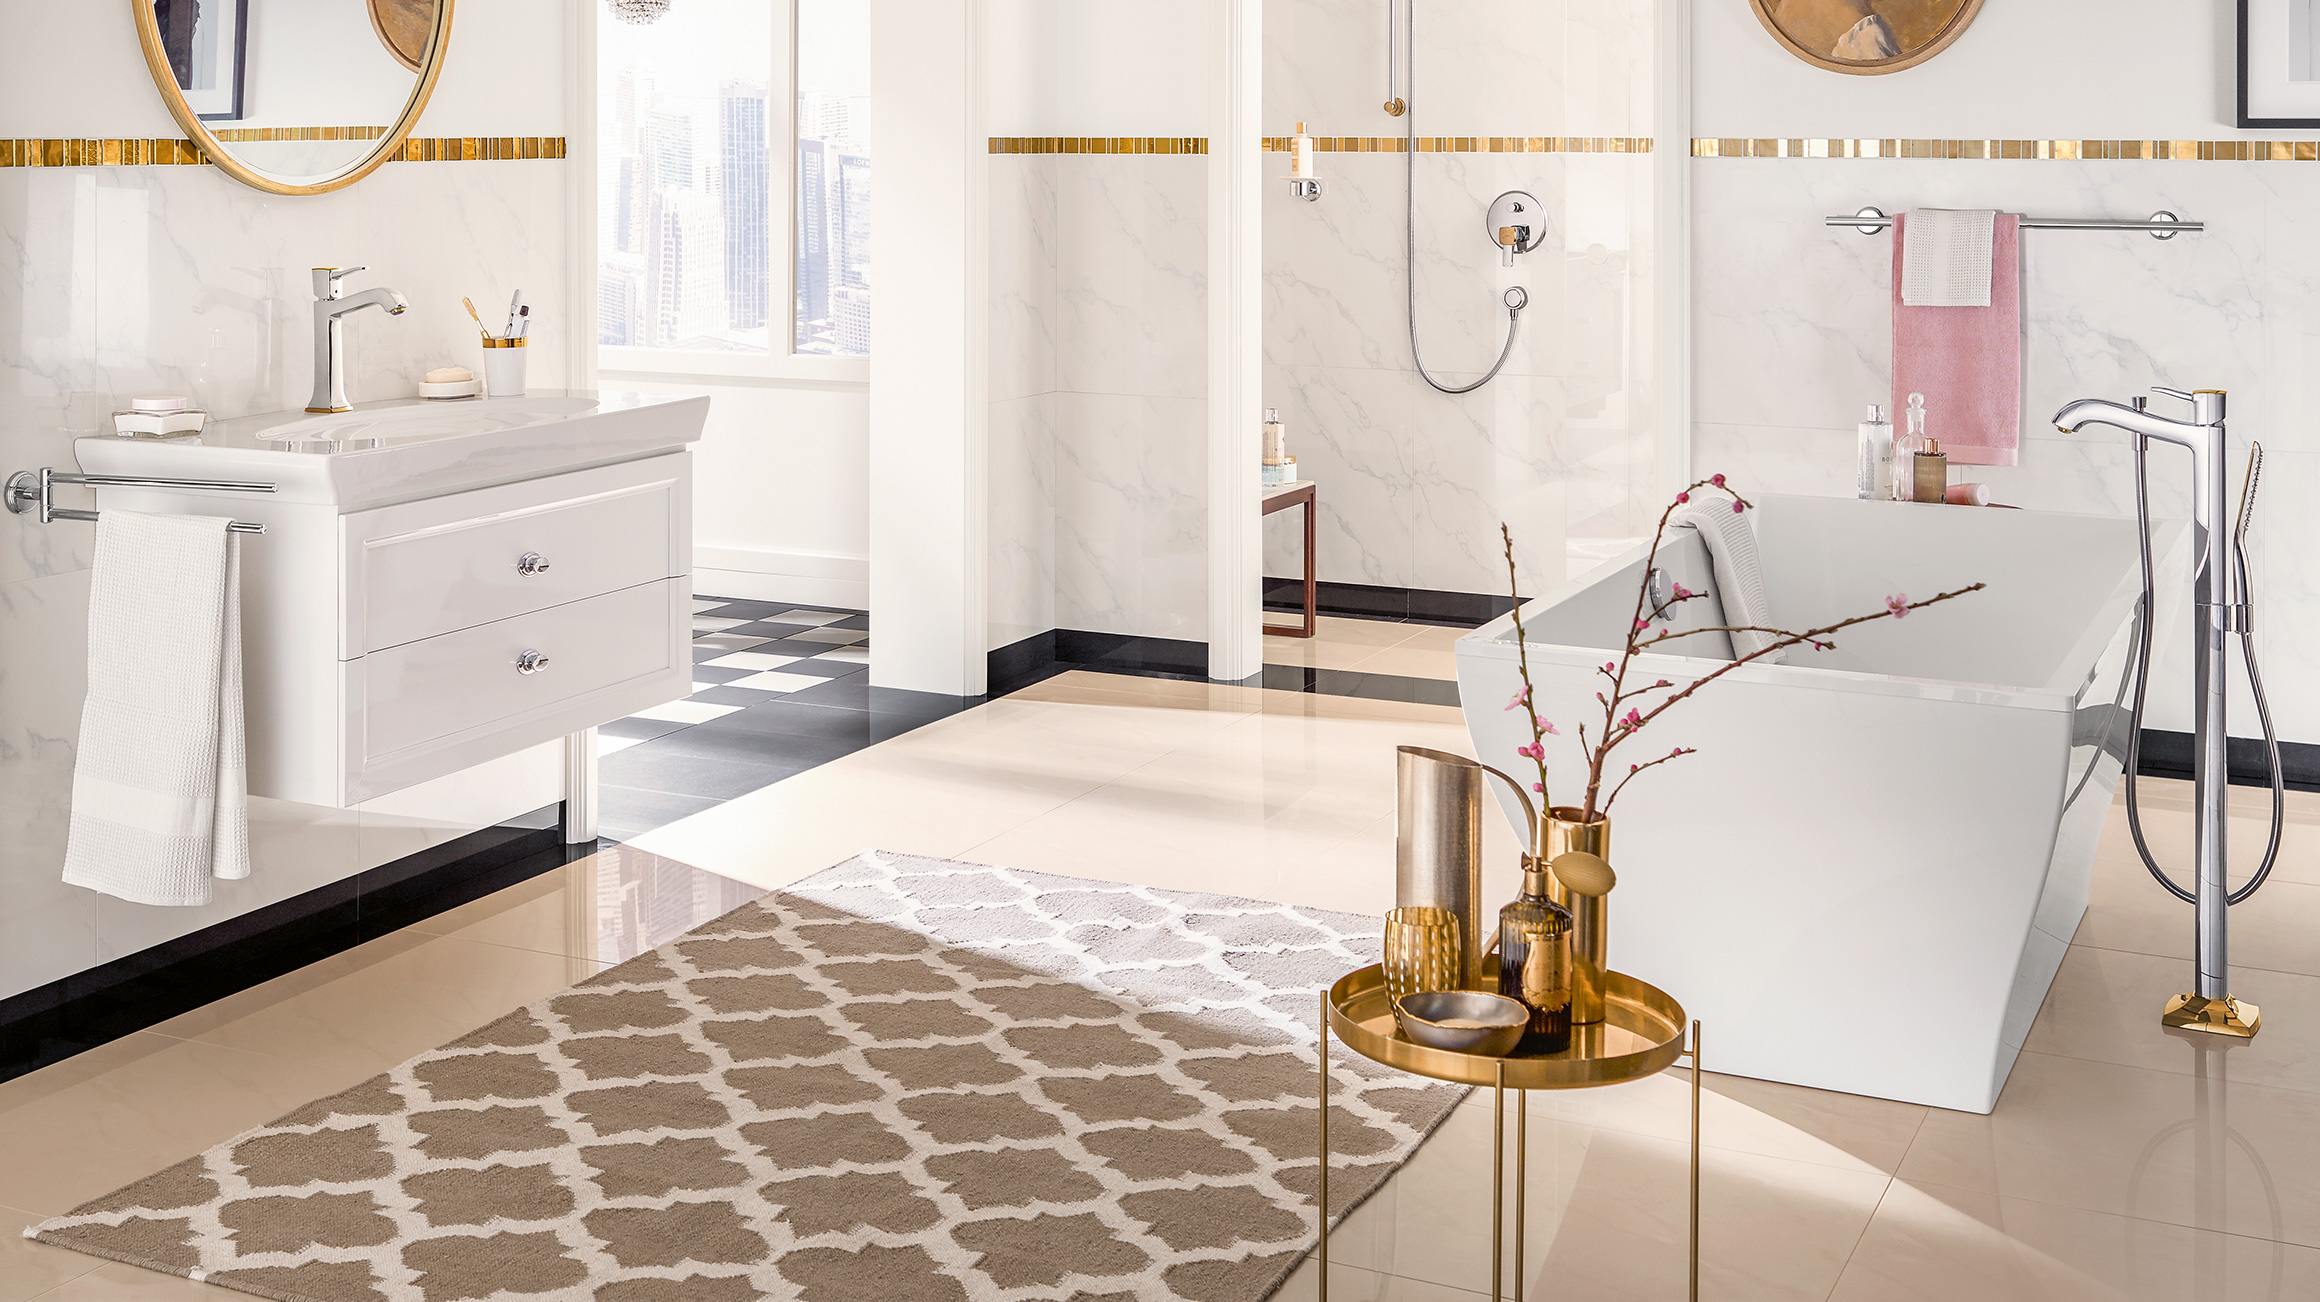 accessories will make your bathroom